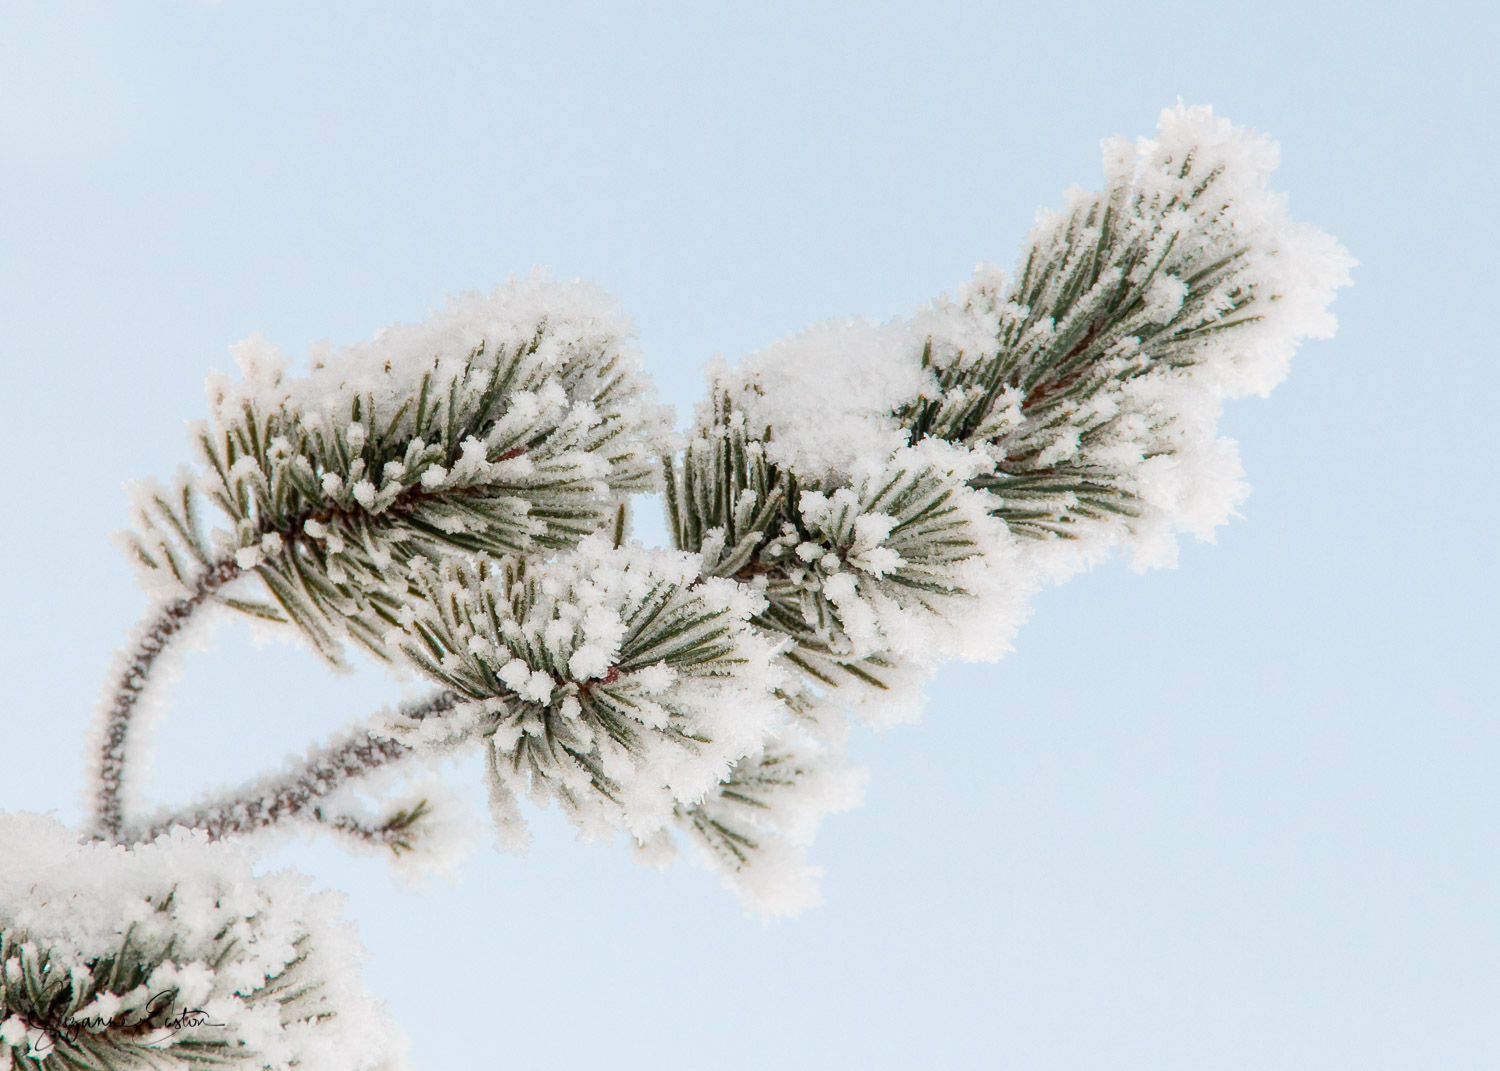 Hoar frost on a pine tree in Sweden